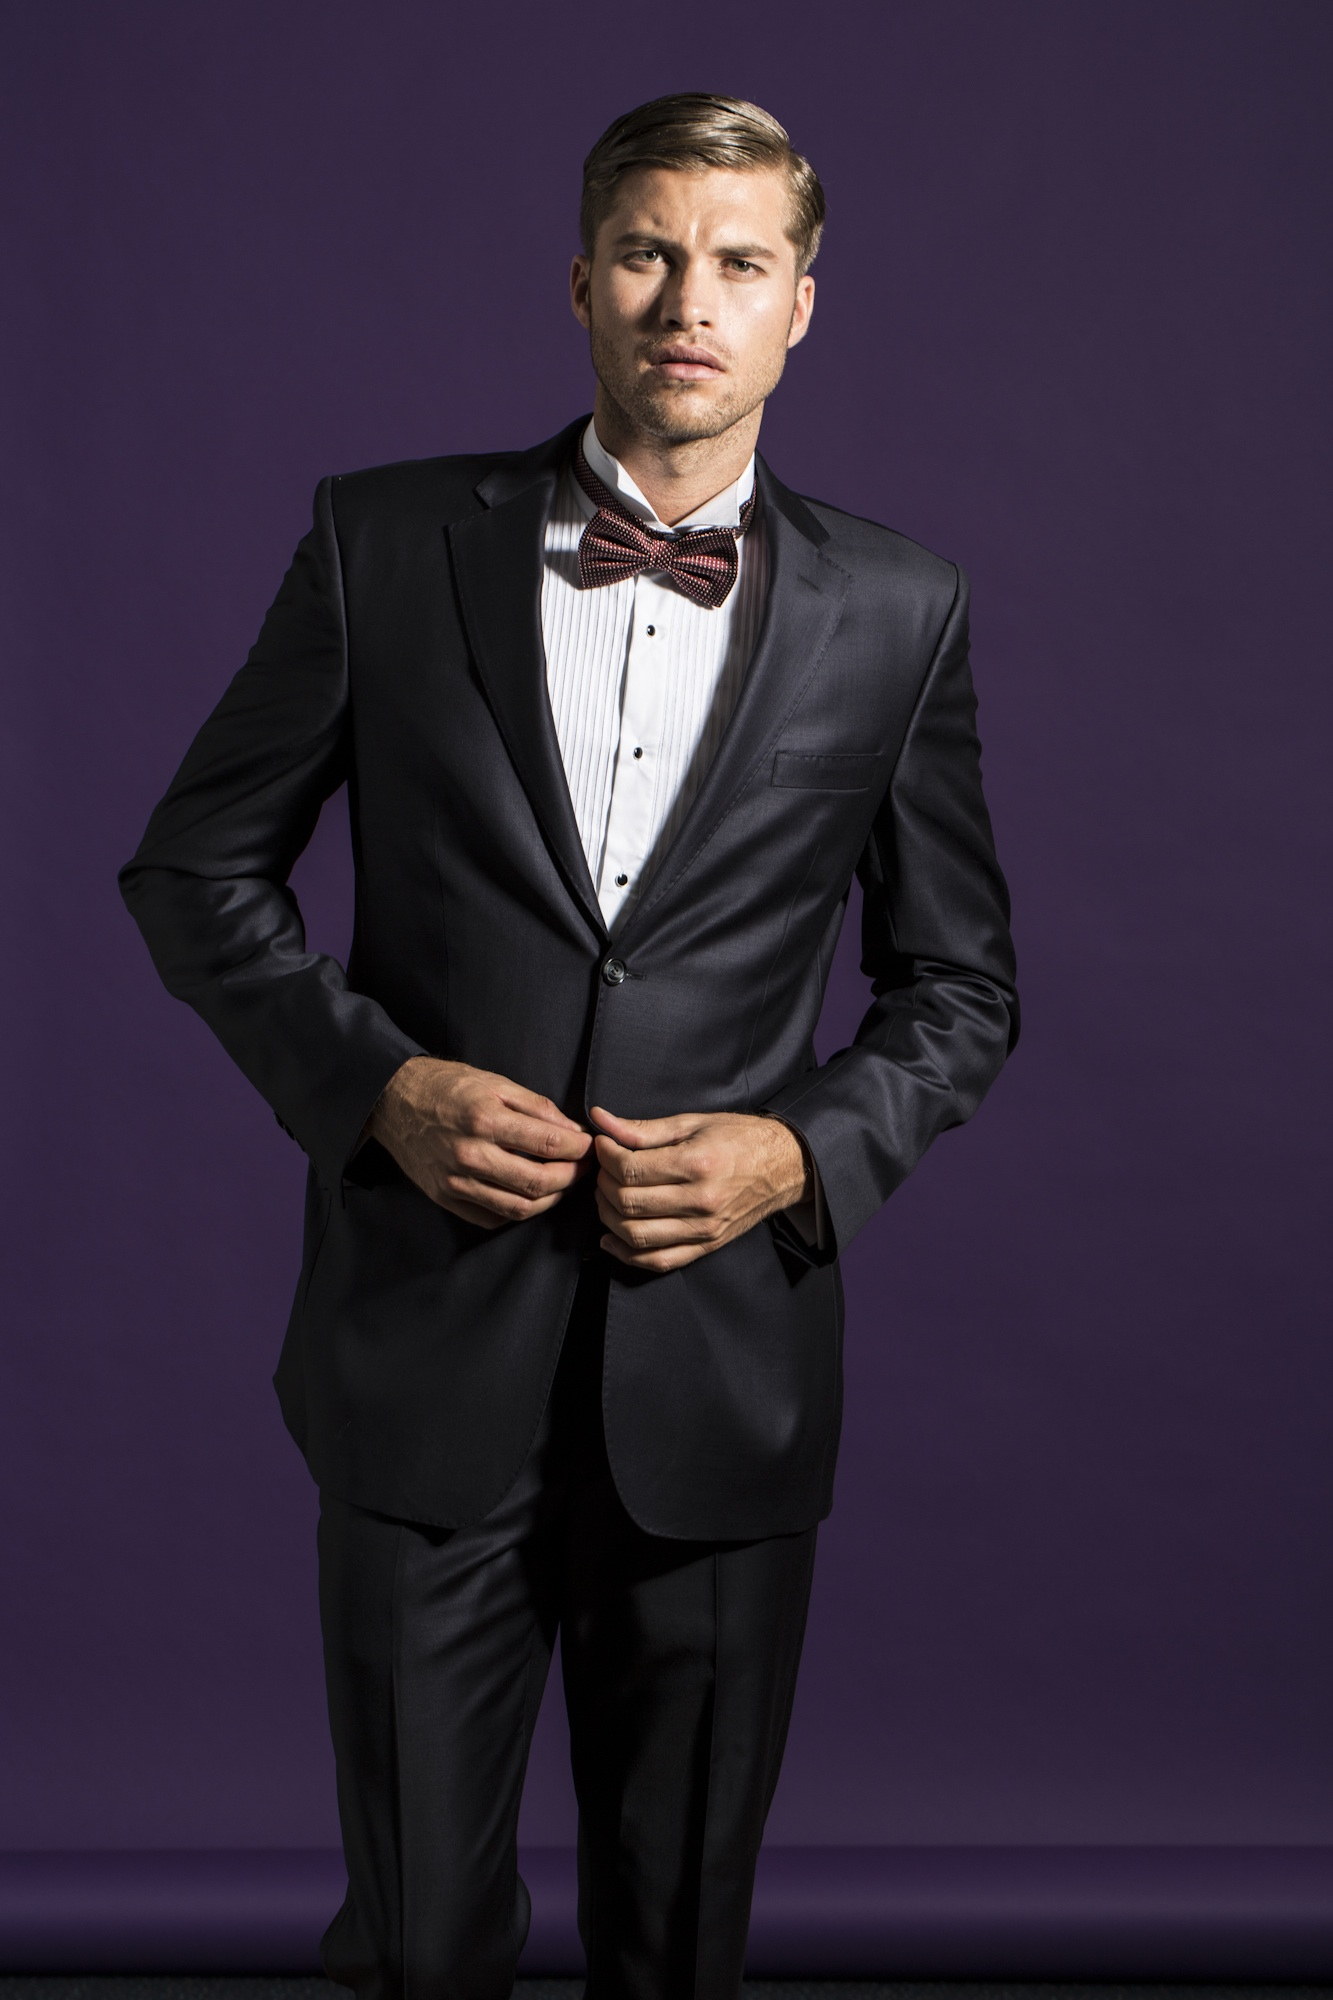 Have a ball - Evening wear essential advice - CLOTHES MAKE THE MAN